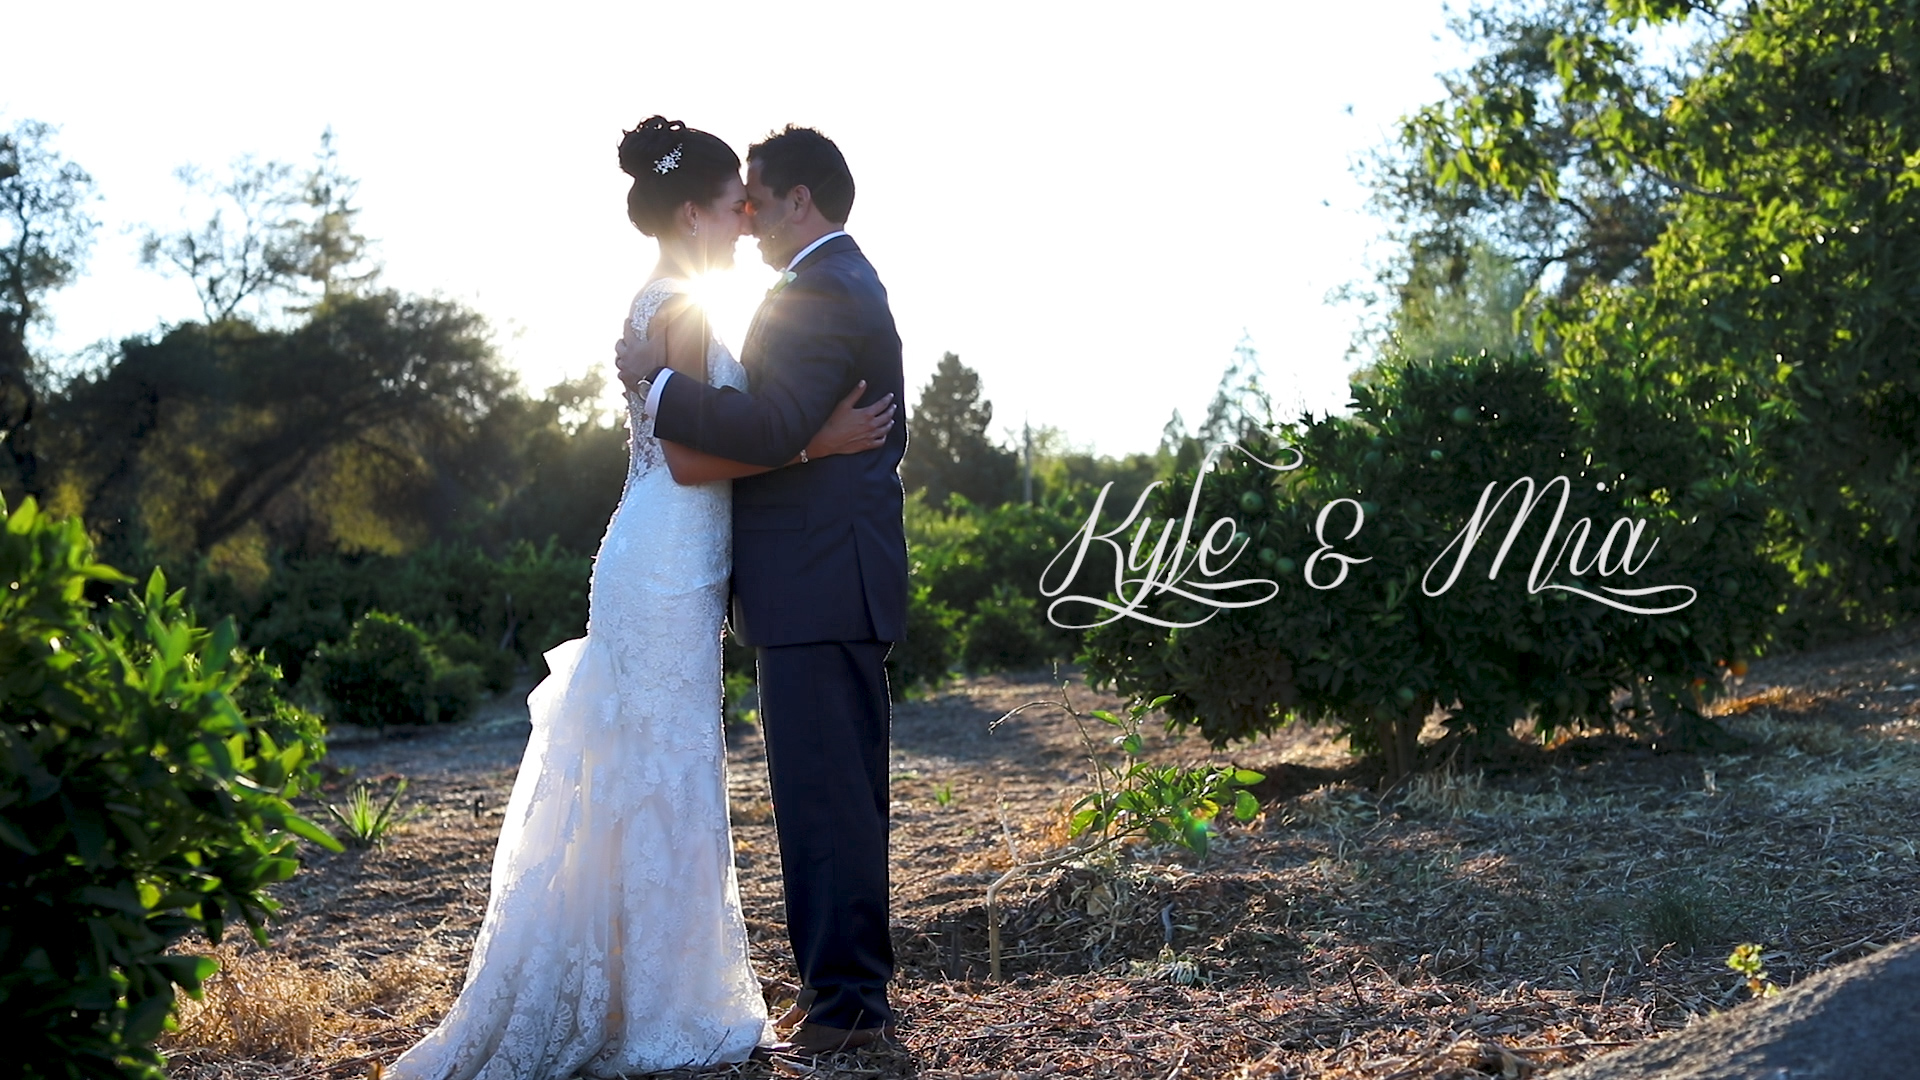 Kyle + Mia | Loomis, California | The Flower Farm